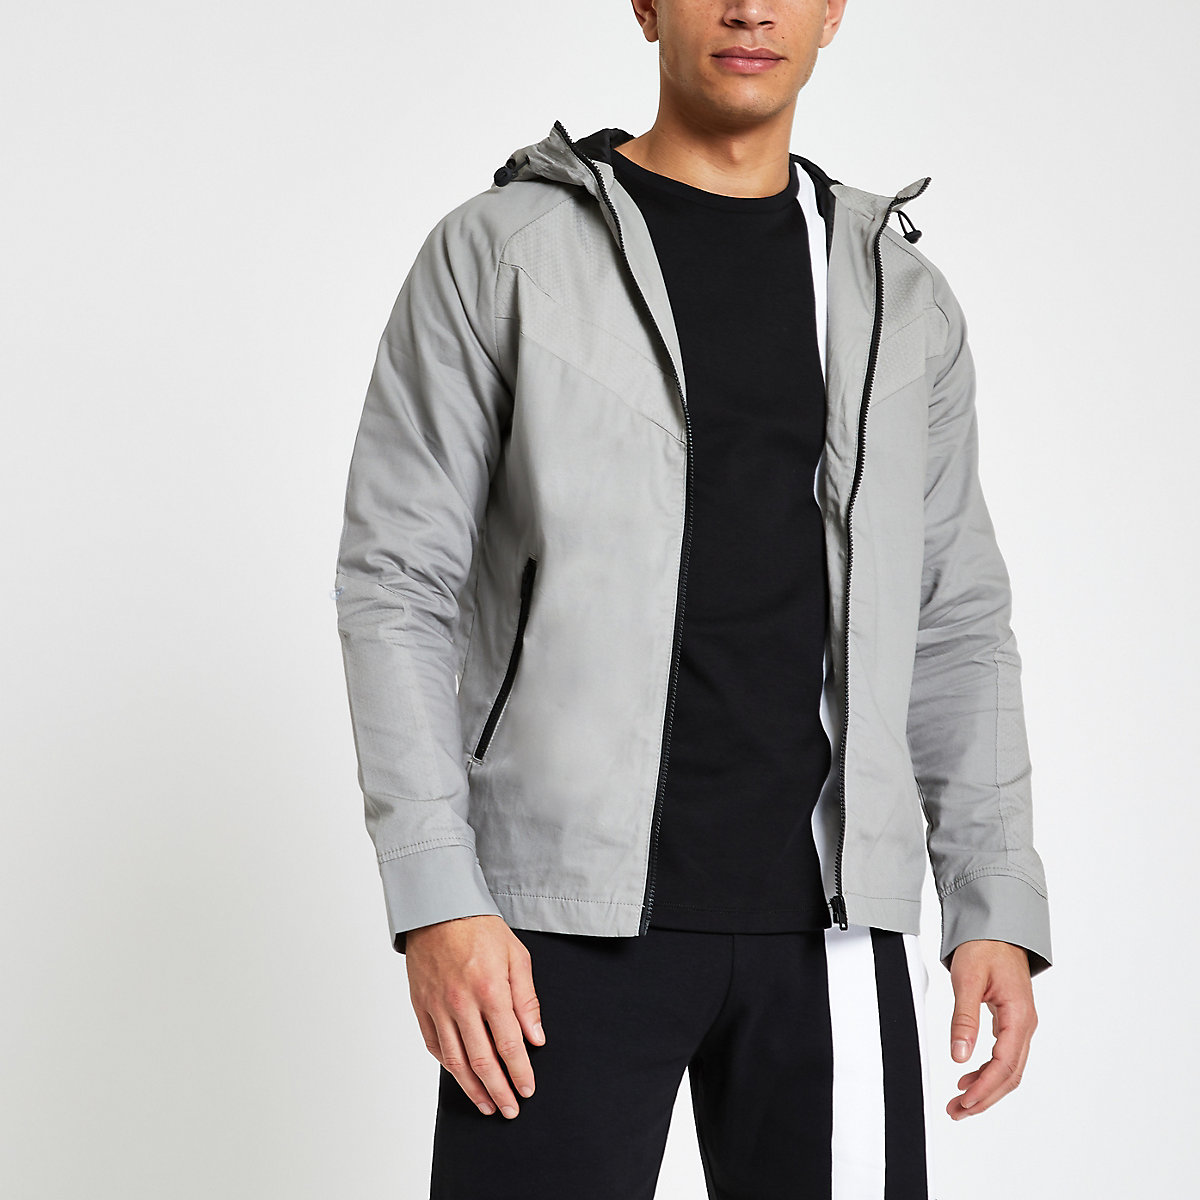 Jack & Jones grey lightweight hooded jacket